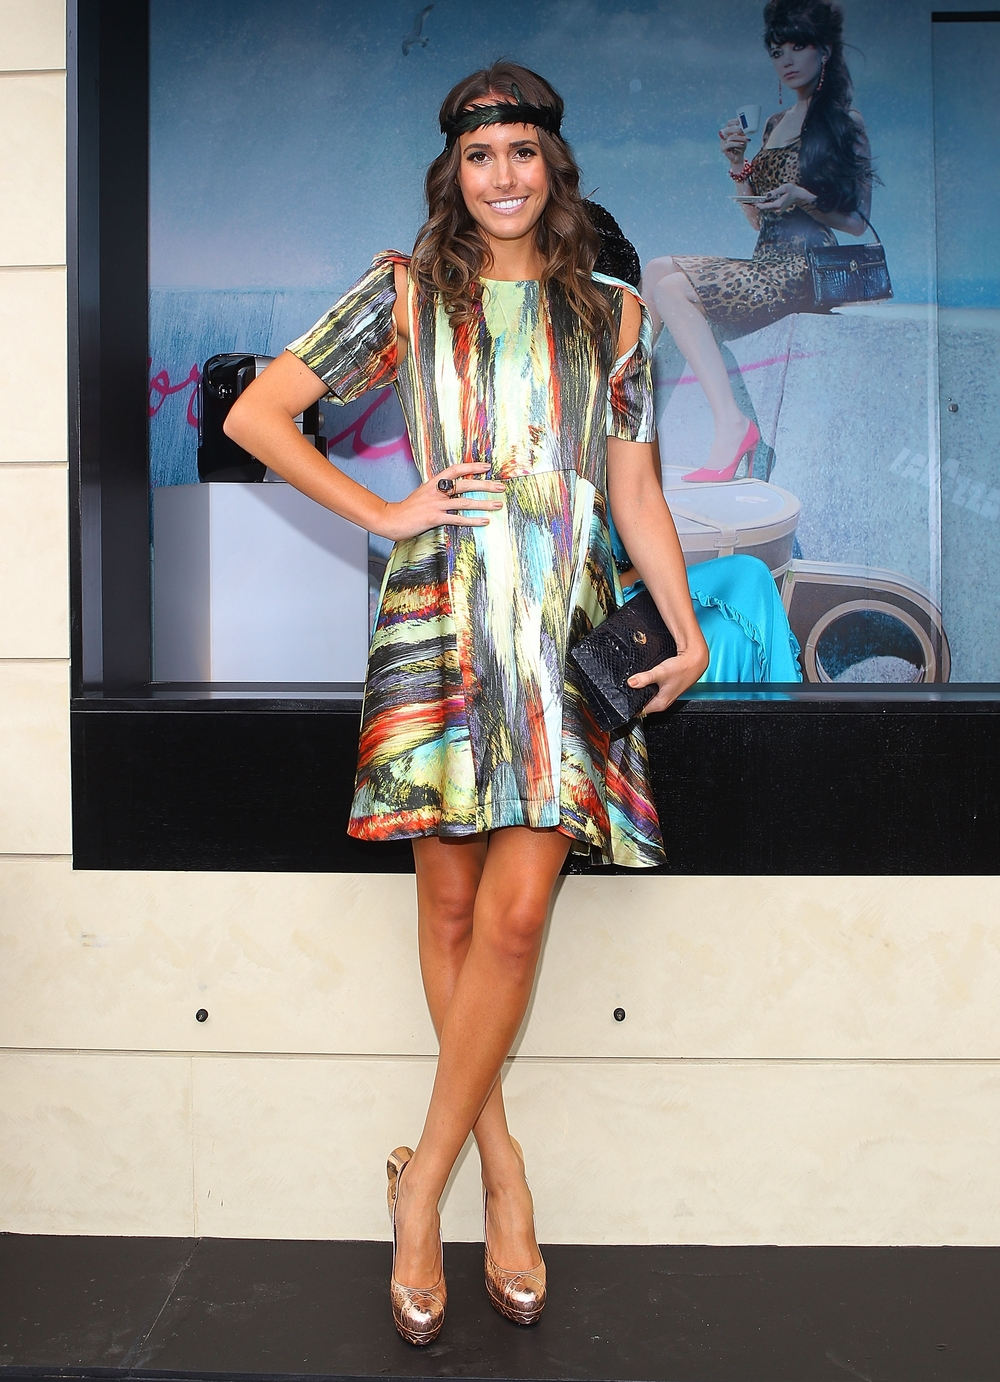 Who's the Worst Dressed on Jersey Shore? Stylist Louise Roe Weighs In on Guido Fashion